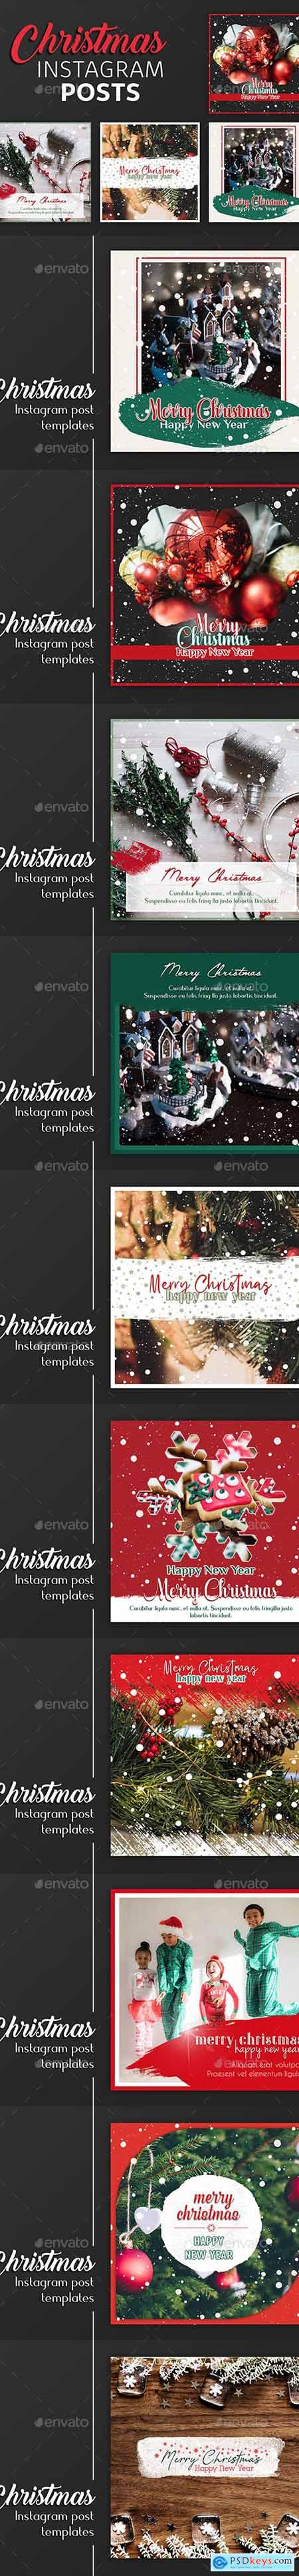 Christmas Instagram Post Templates 22882080